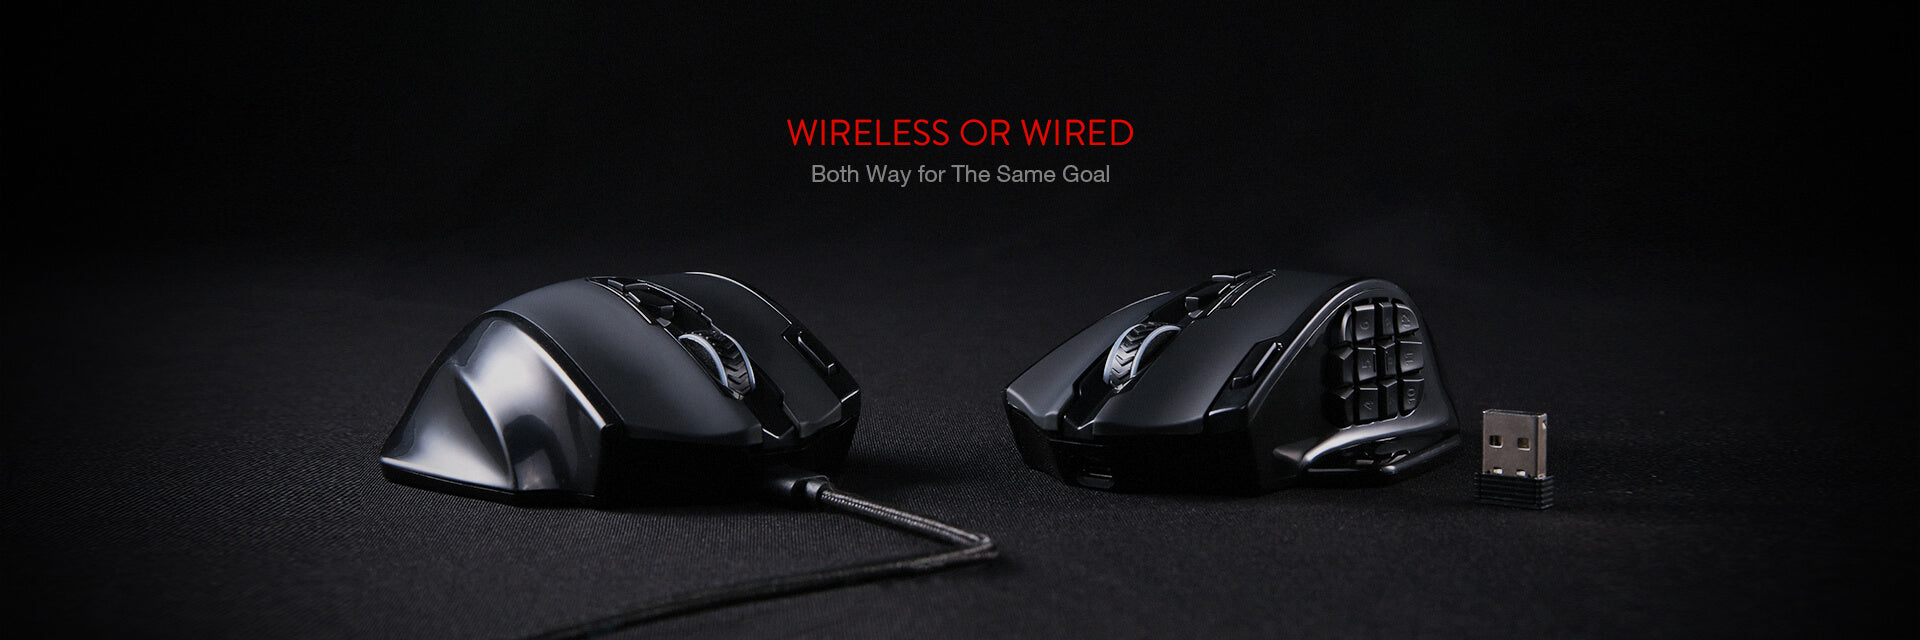 redragon m913 mmo mouse